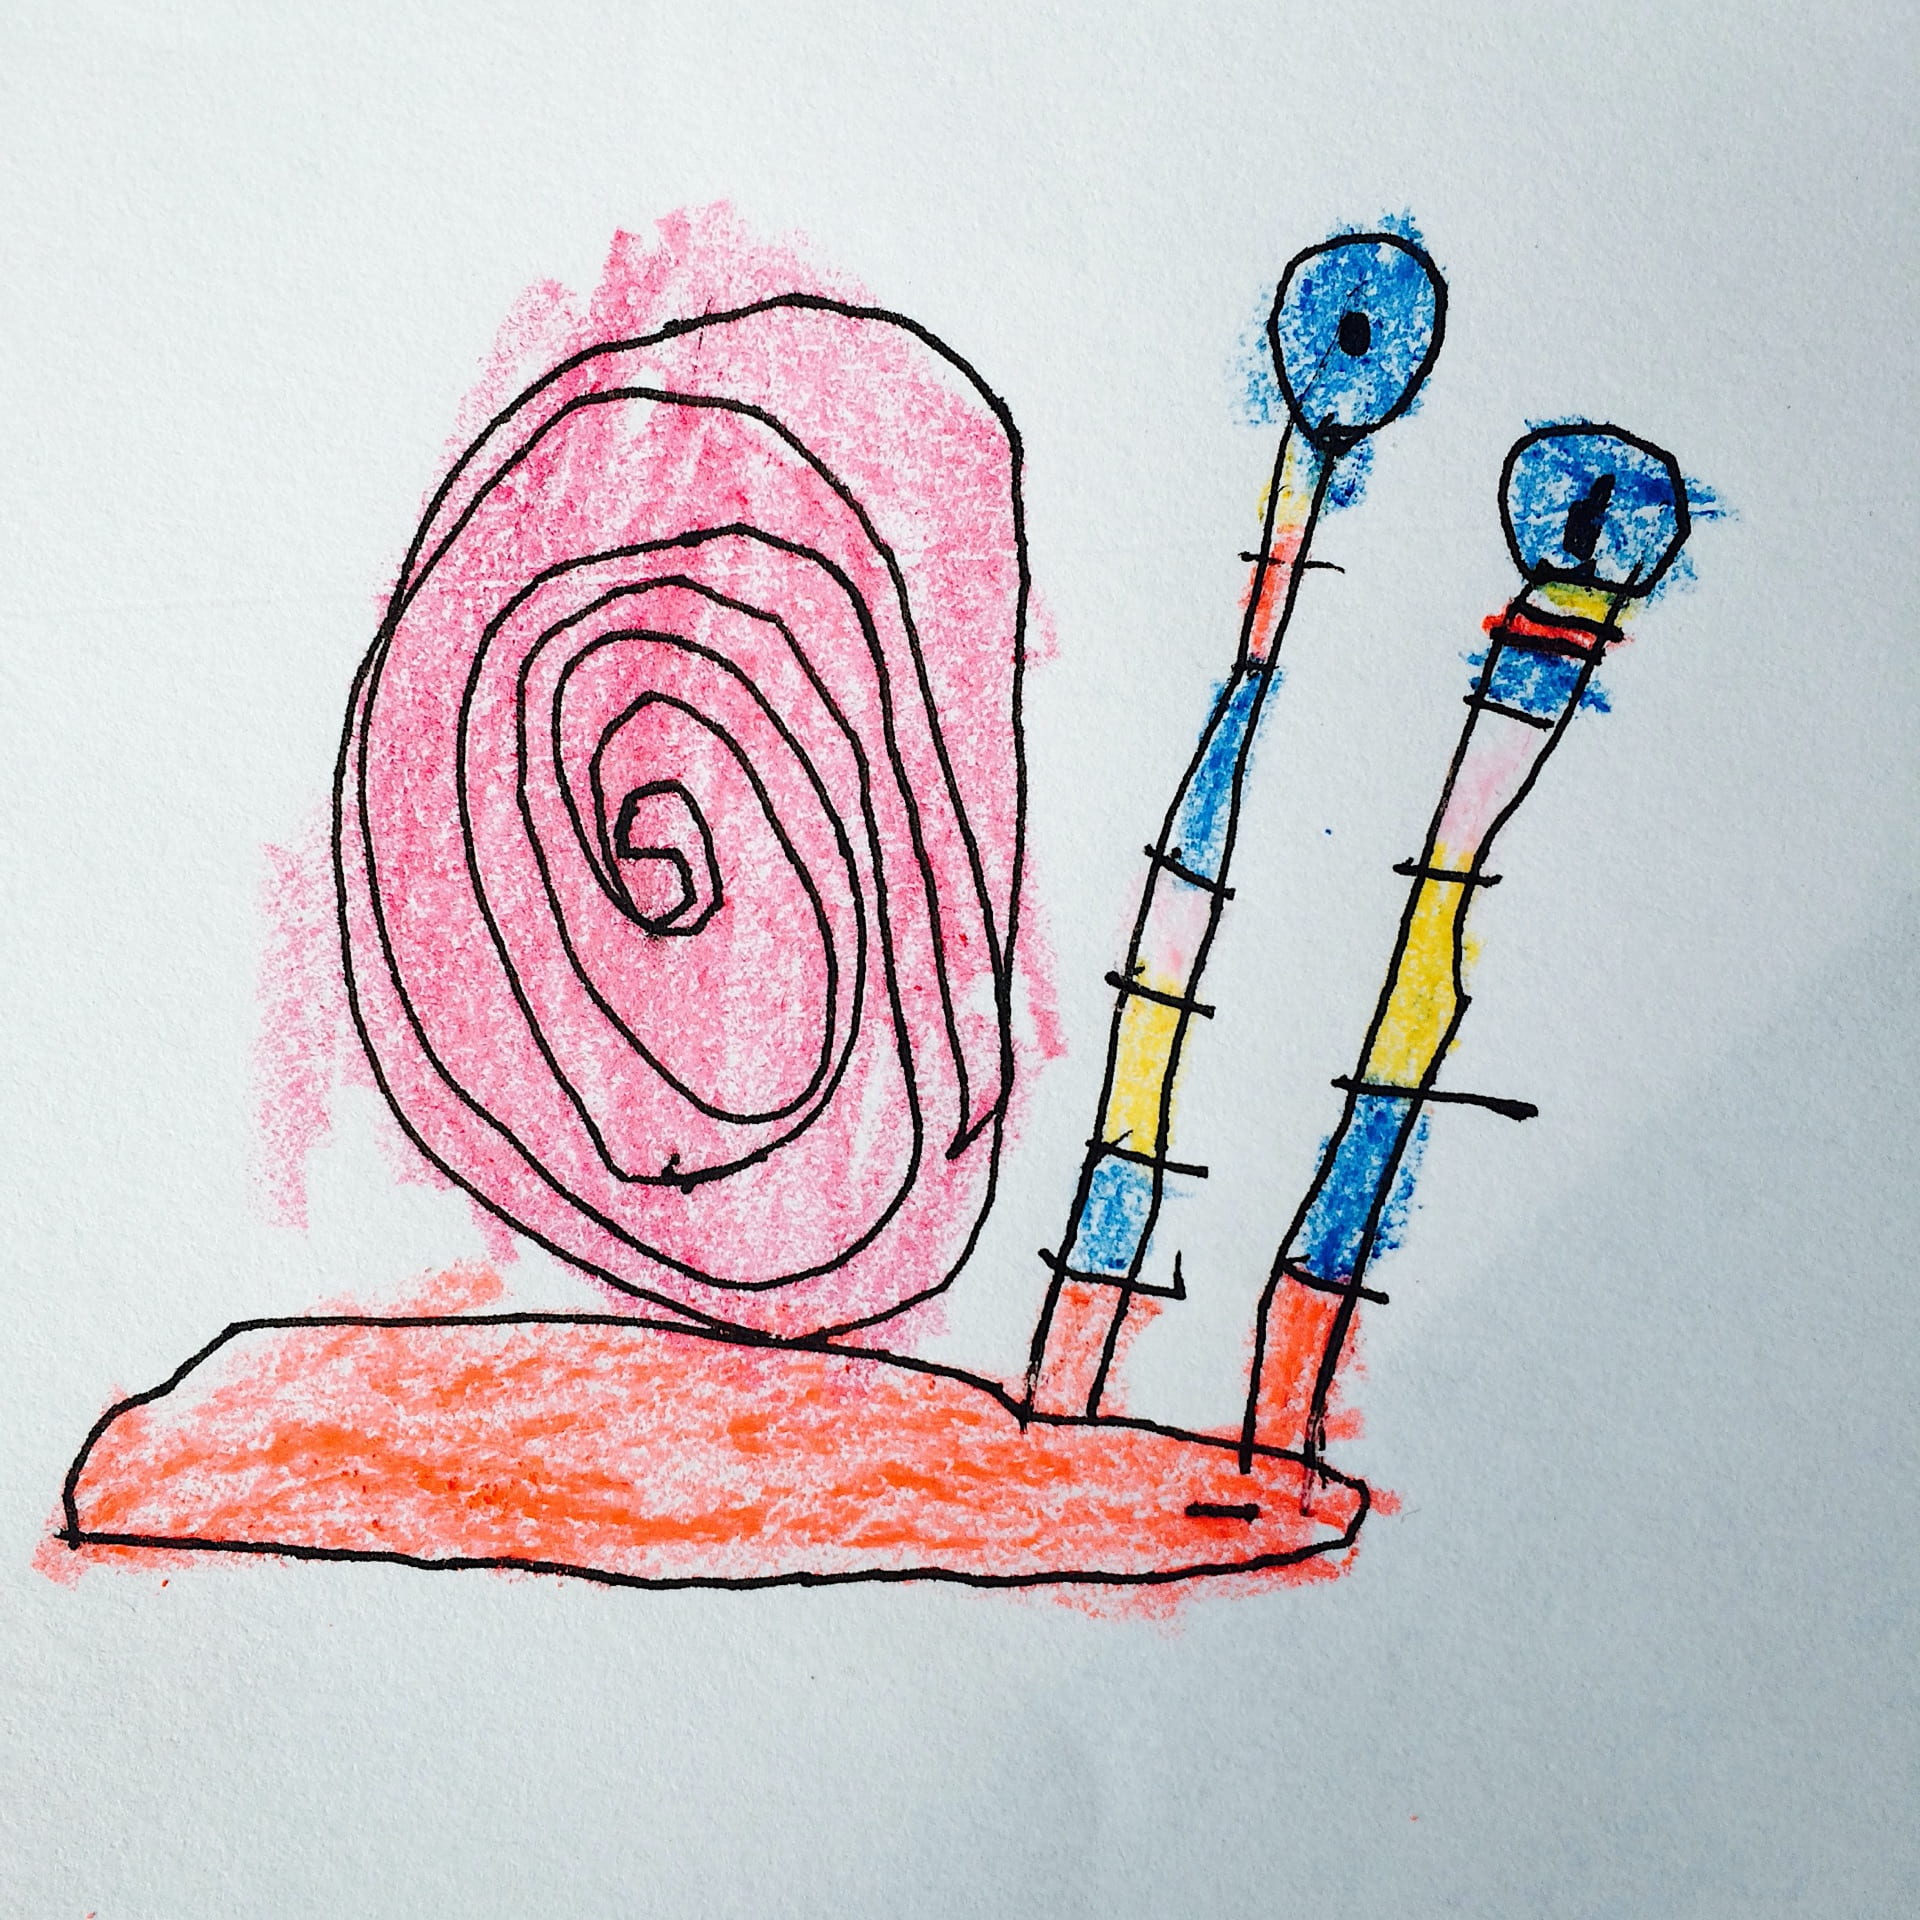 drawing of a snail